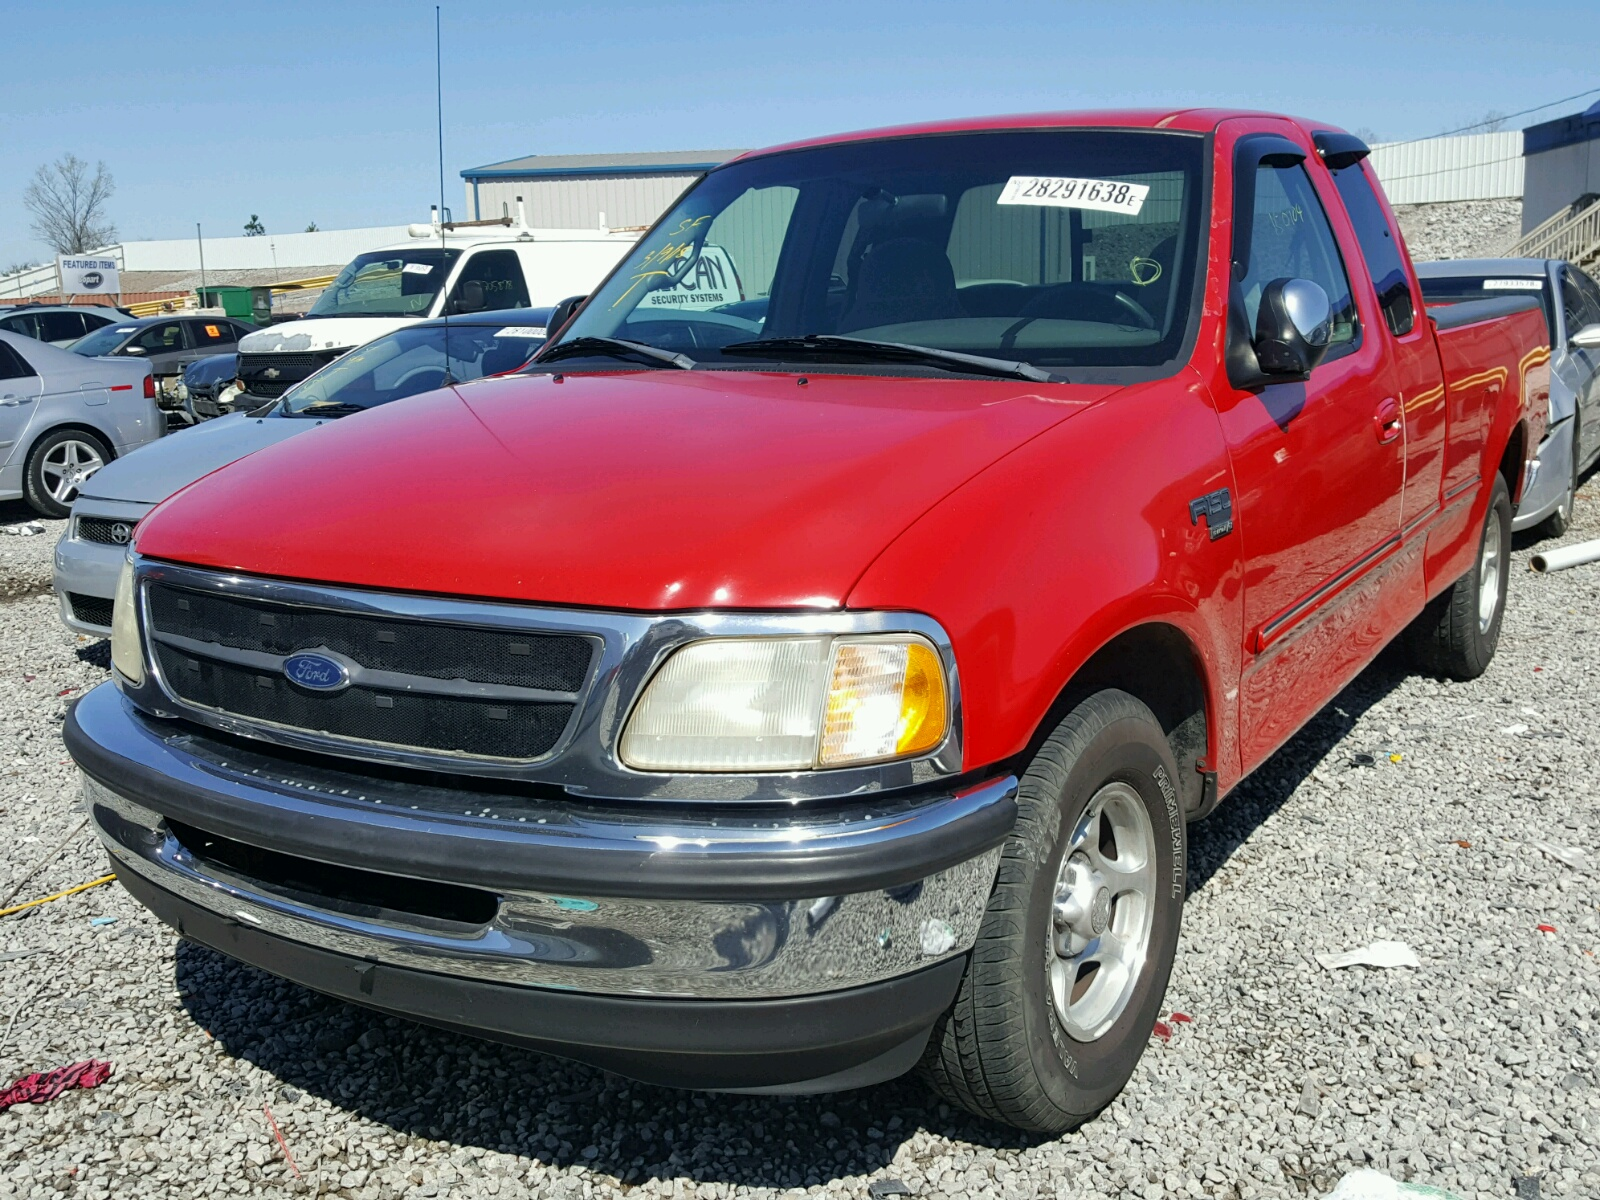 1998 Ford F150 Rear End Damage 1ftzx1768wnc20579 Sold Security Systems 1 2